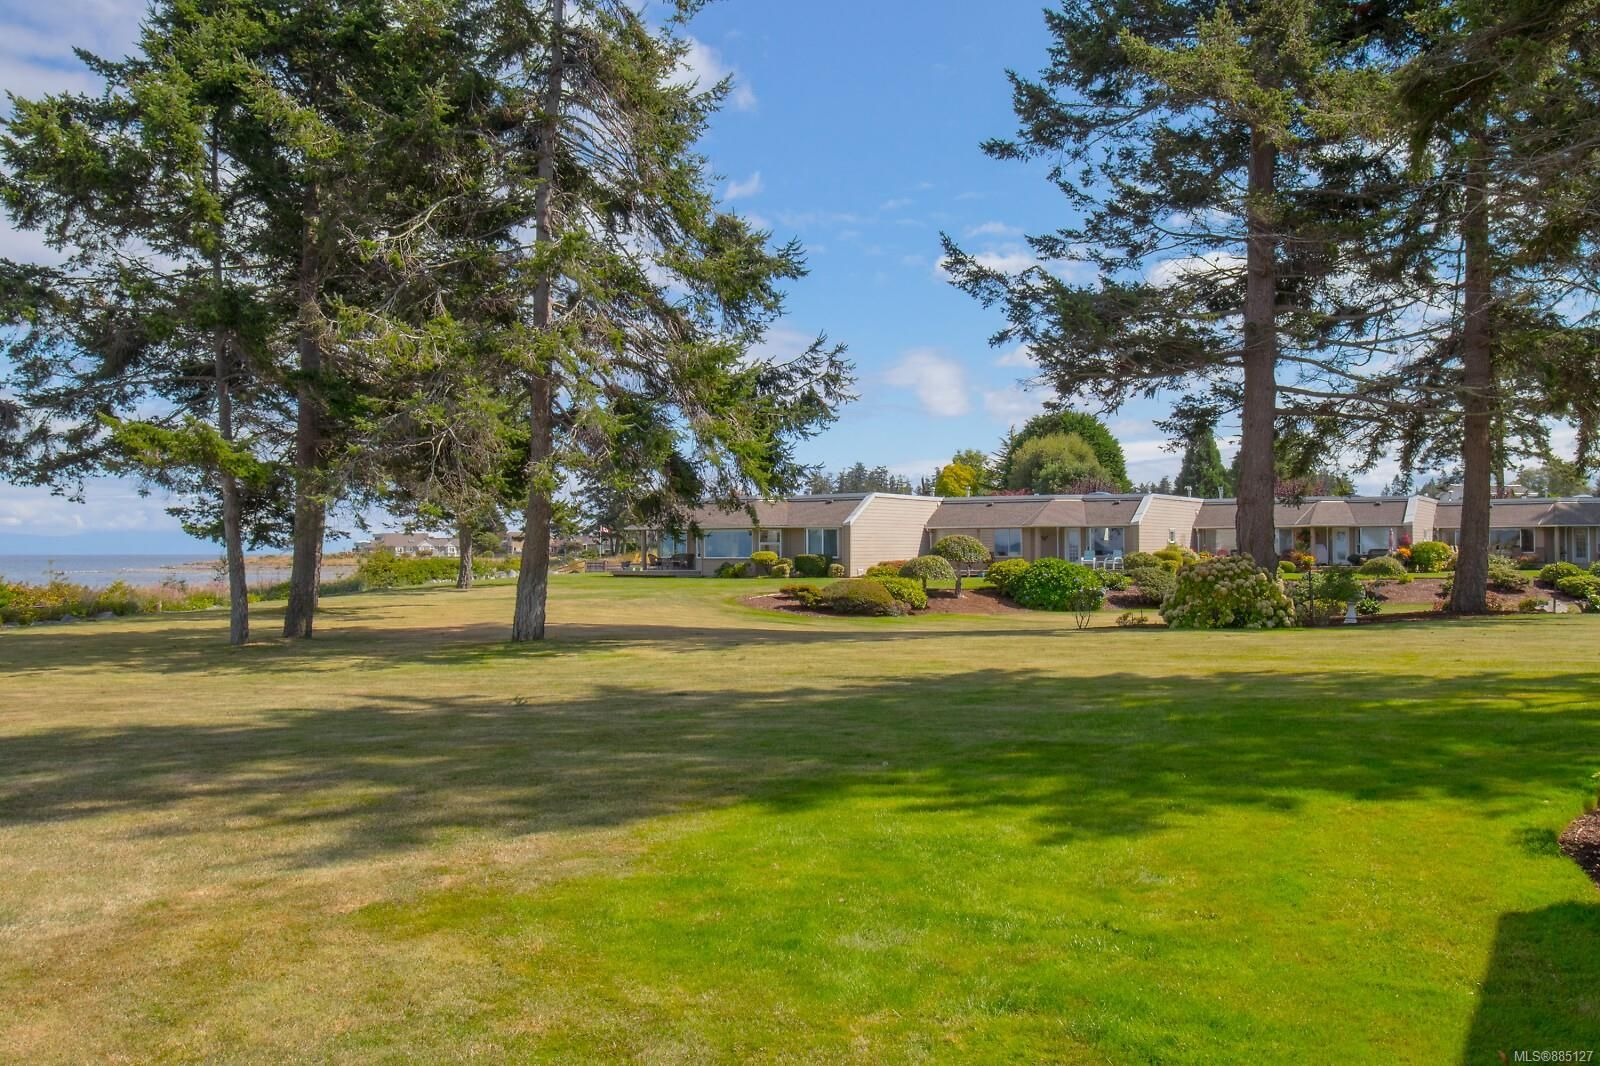 Photo 49: Photos: 26 529 Johnstone Rd in : PQ French Creek Row/Townhouse for sale (Parksville/Qualicum)  : MLS®# 885127